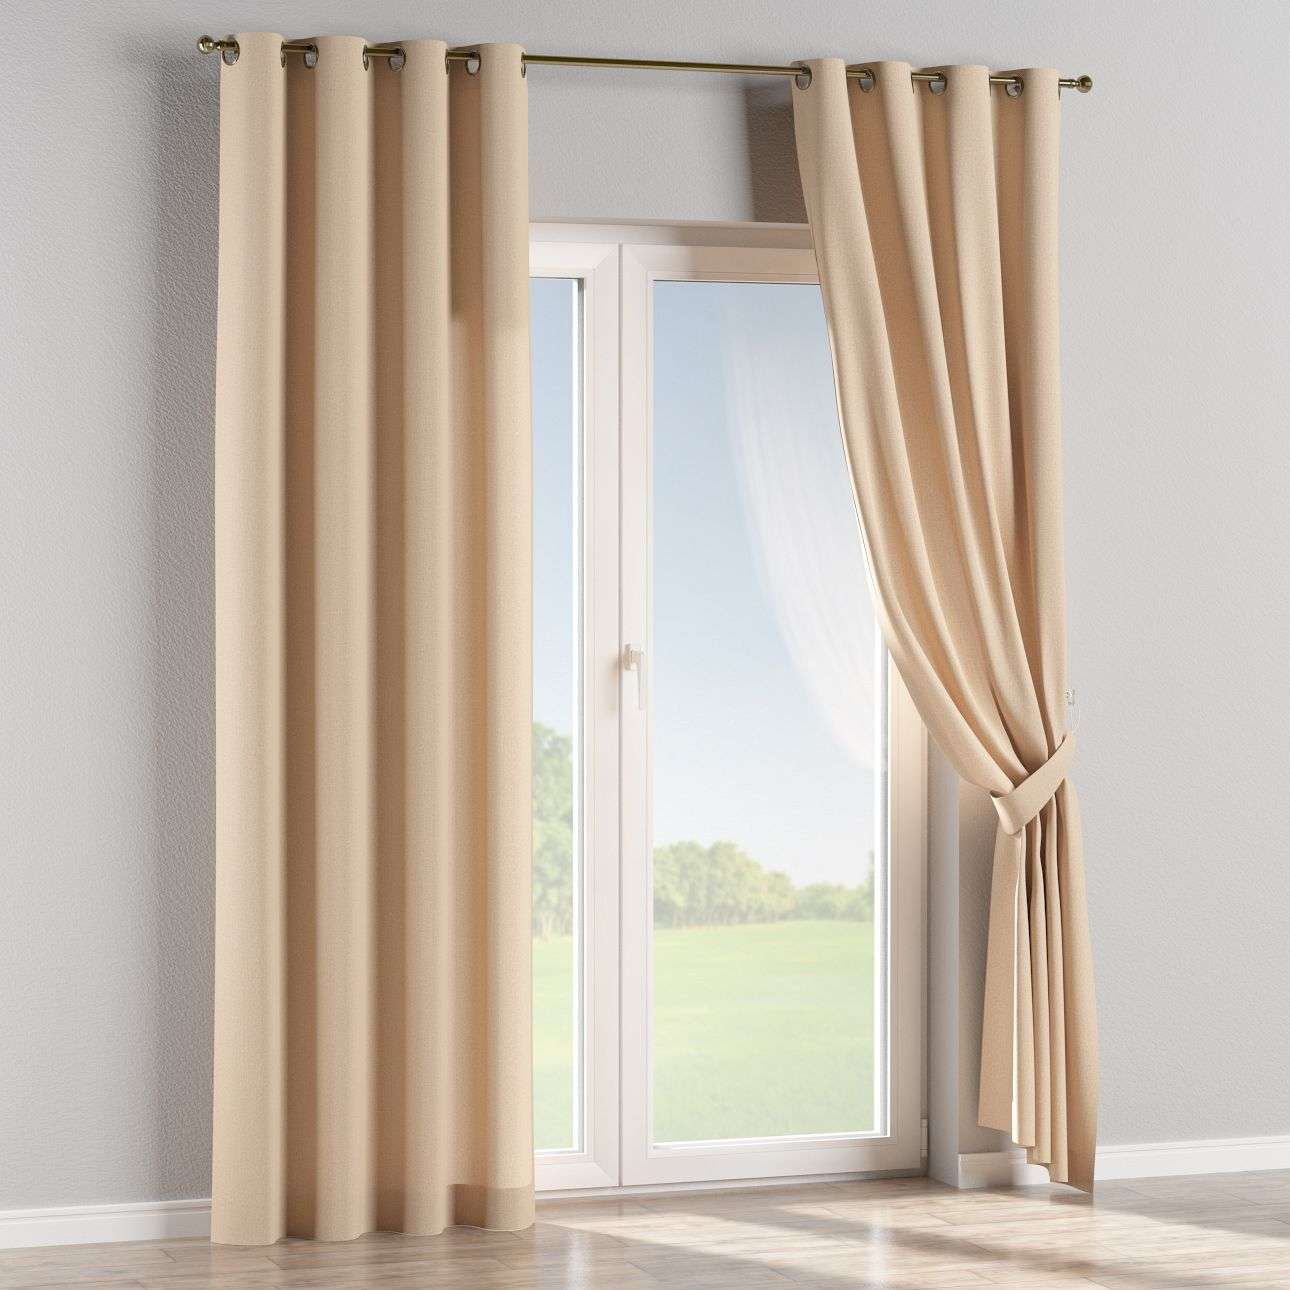 Eyelet curtains 130 x 260 cm (51 x 102 inch) in collection Edinburgh, fabric: 115-78